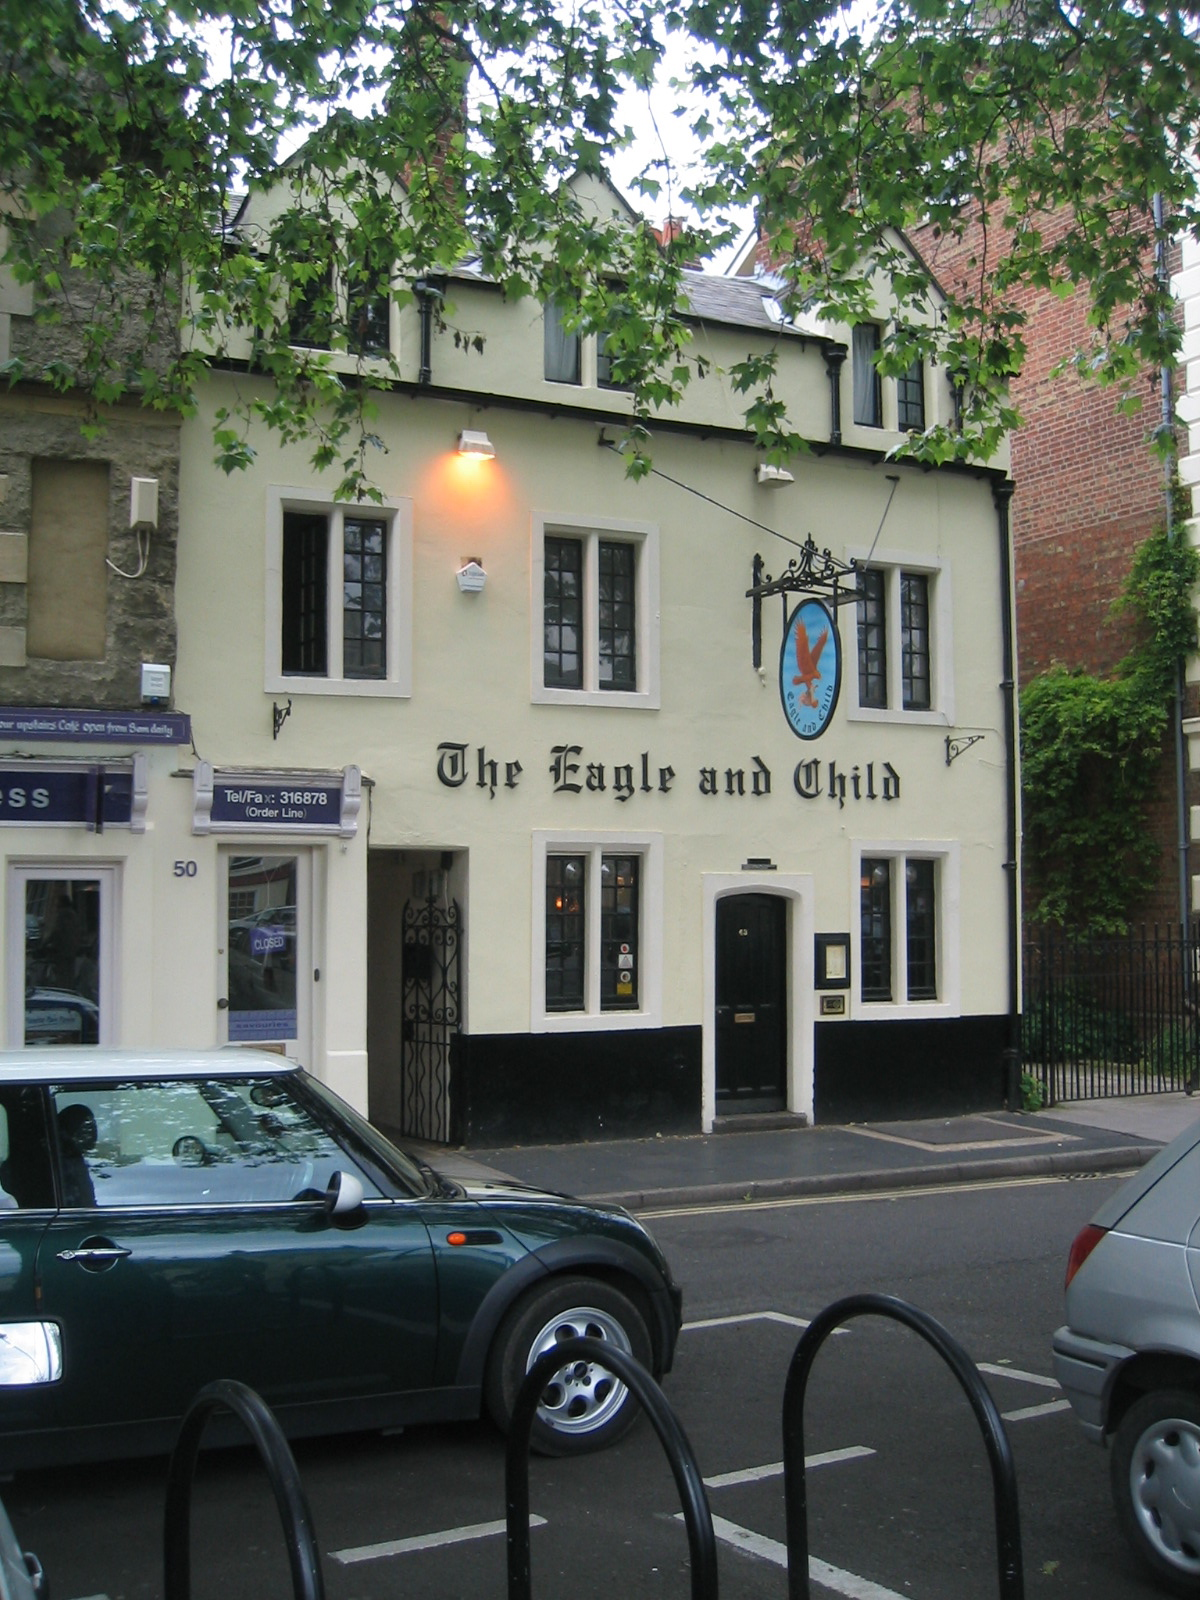 The Eagle and Child pub in Oxford where the Inklings met in 1939 / Public Domain / Wikimedia Commons